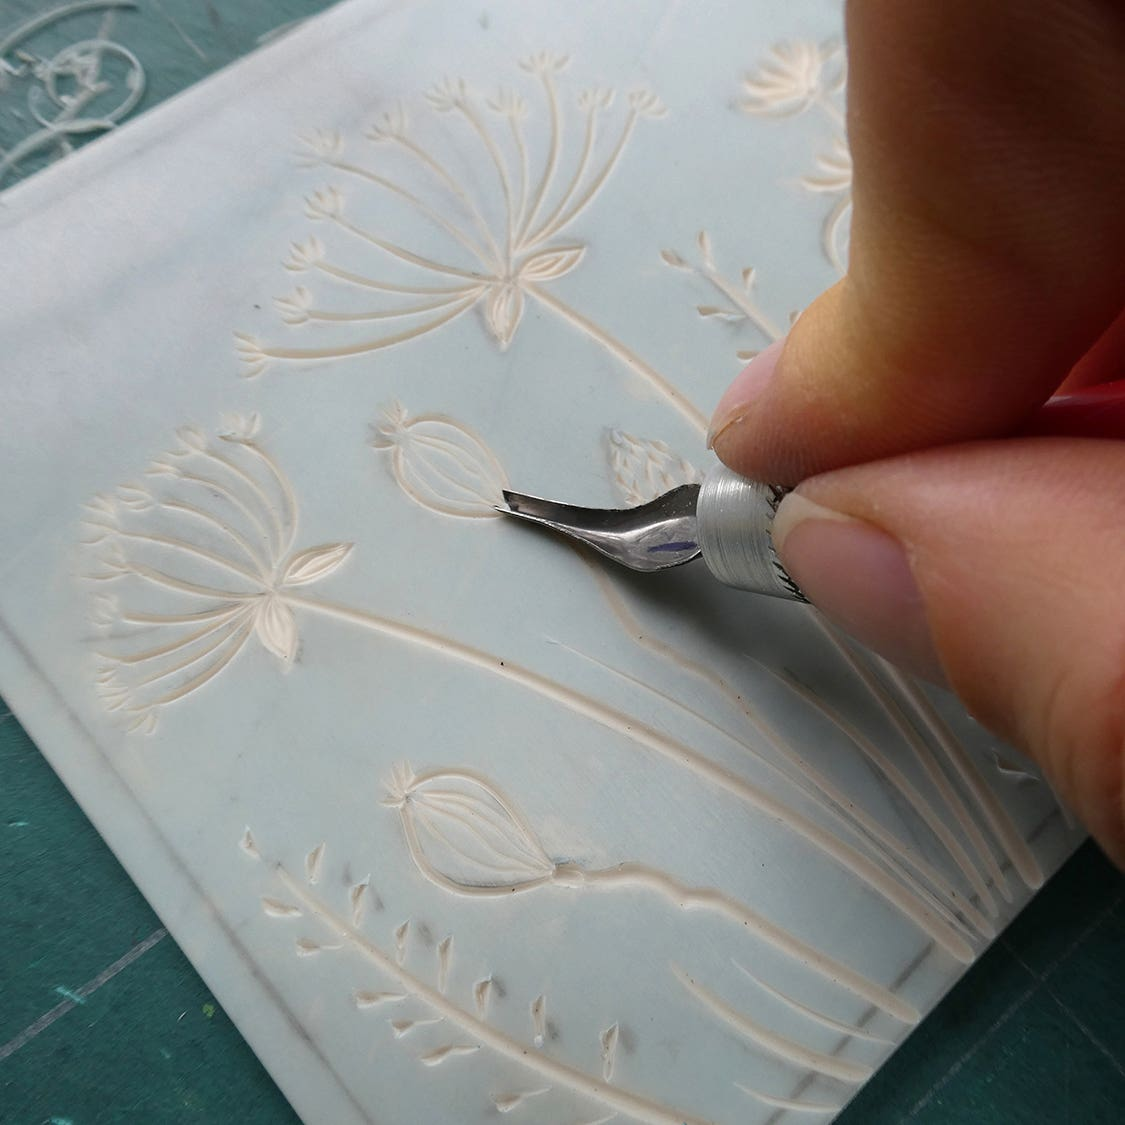 Learn how to carve lino using beginners tools.